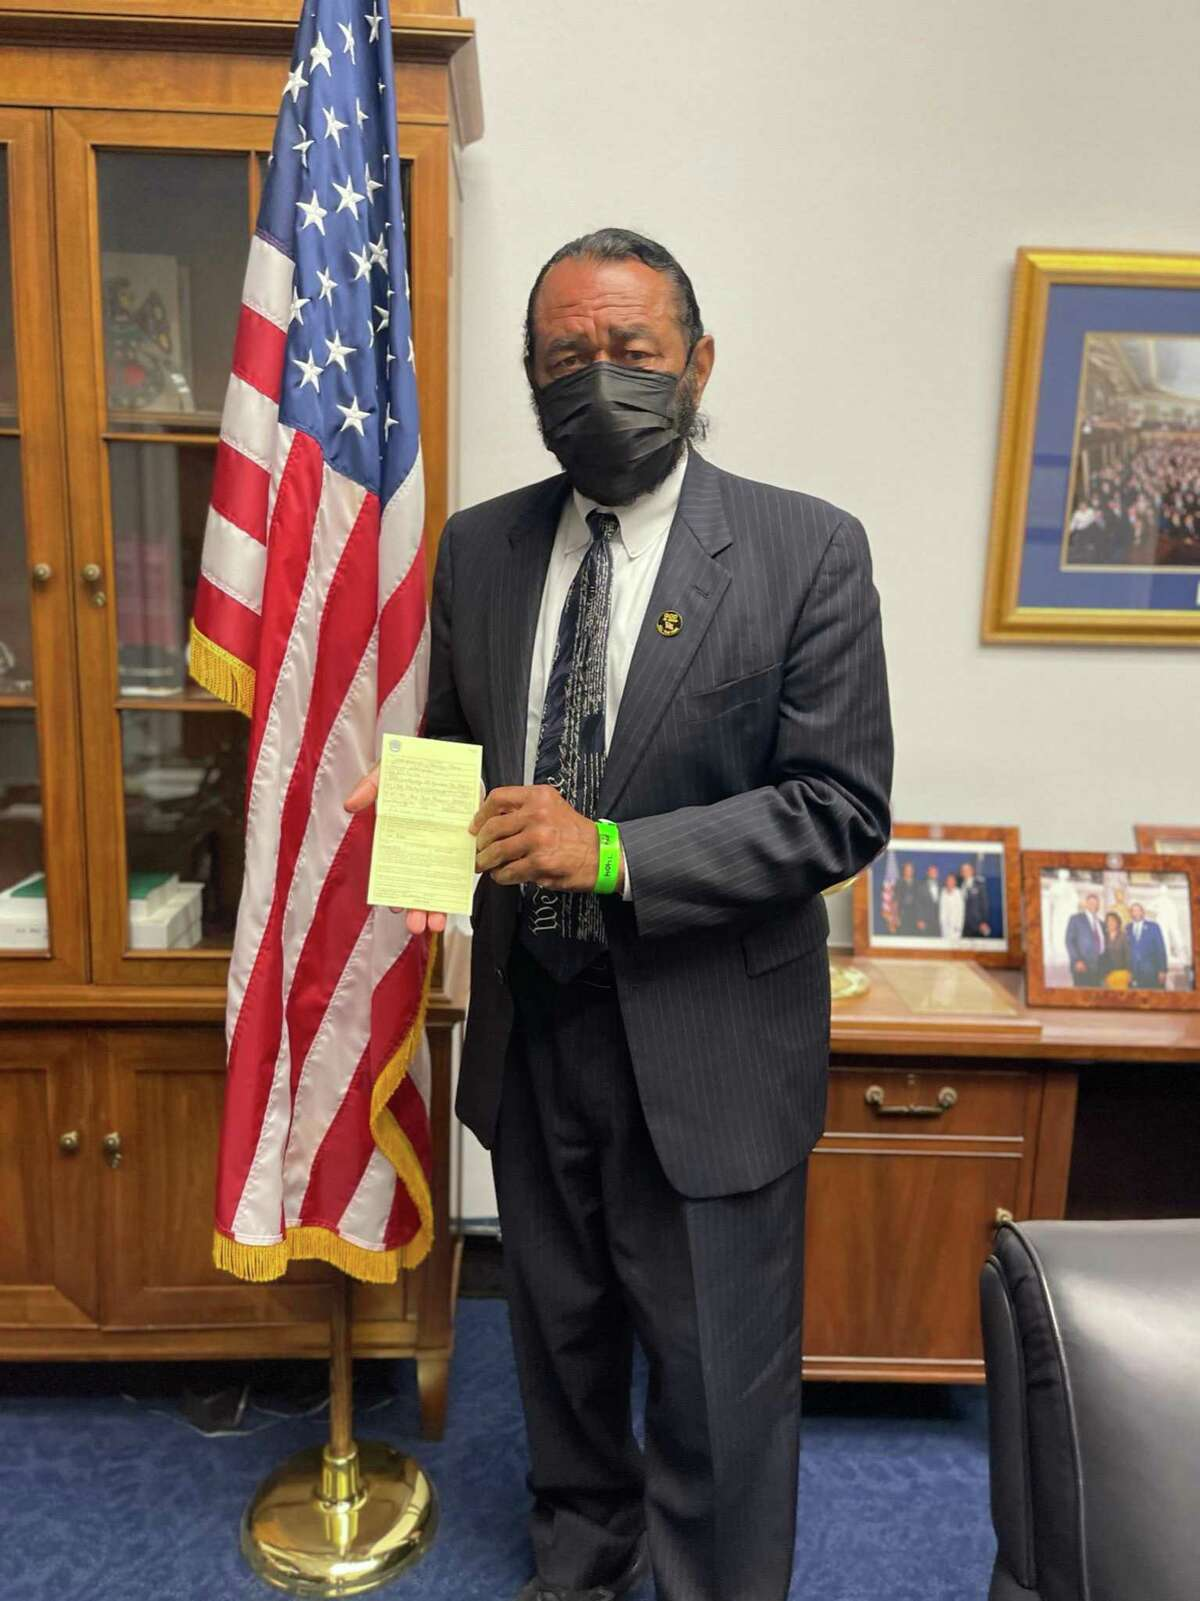 U.S. Rep. Al Green, D-Texas, holds up the citation he received after being arrested for civil disobedience while protesting voter suppression.